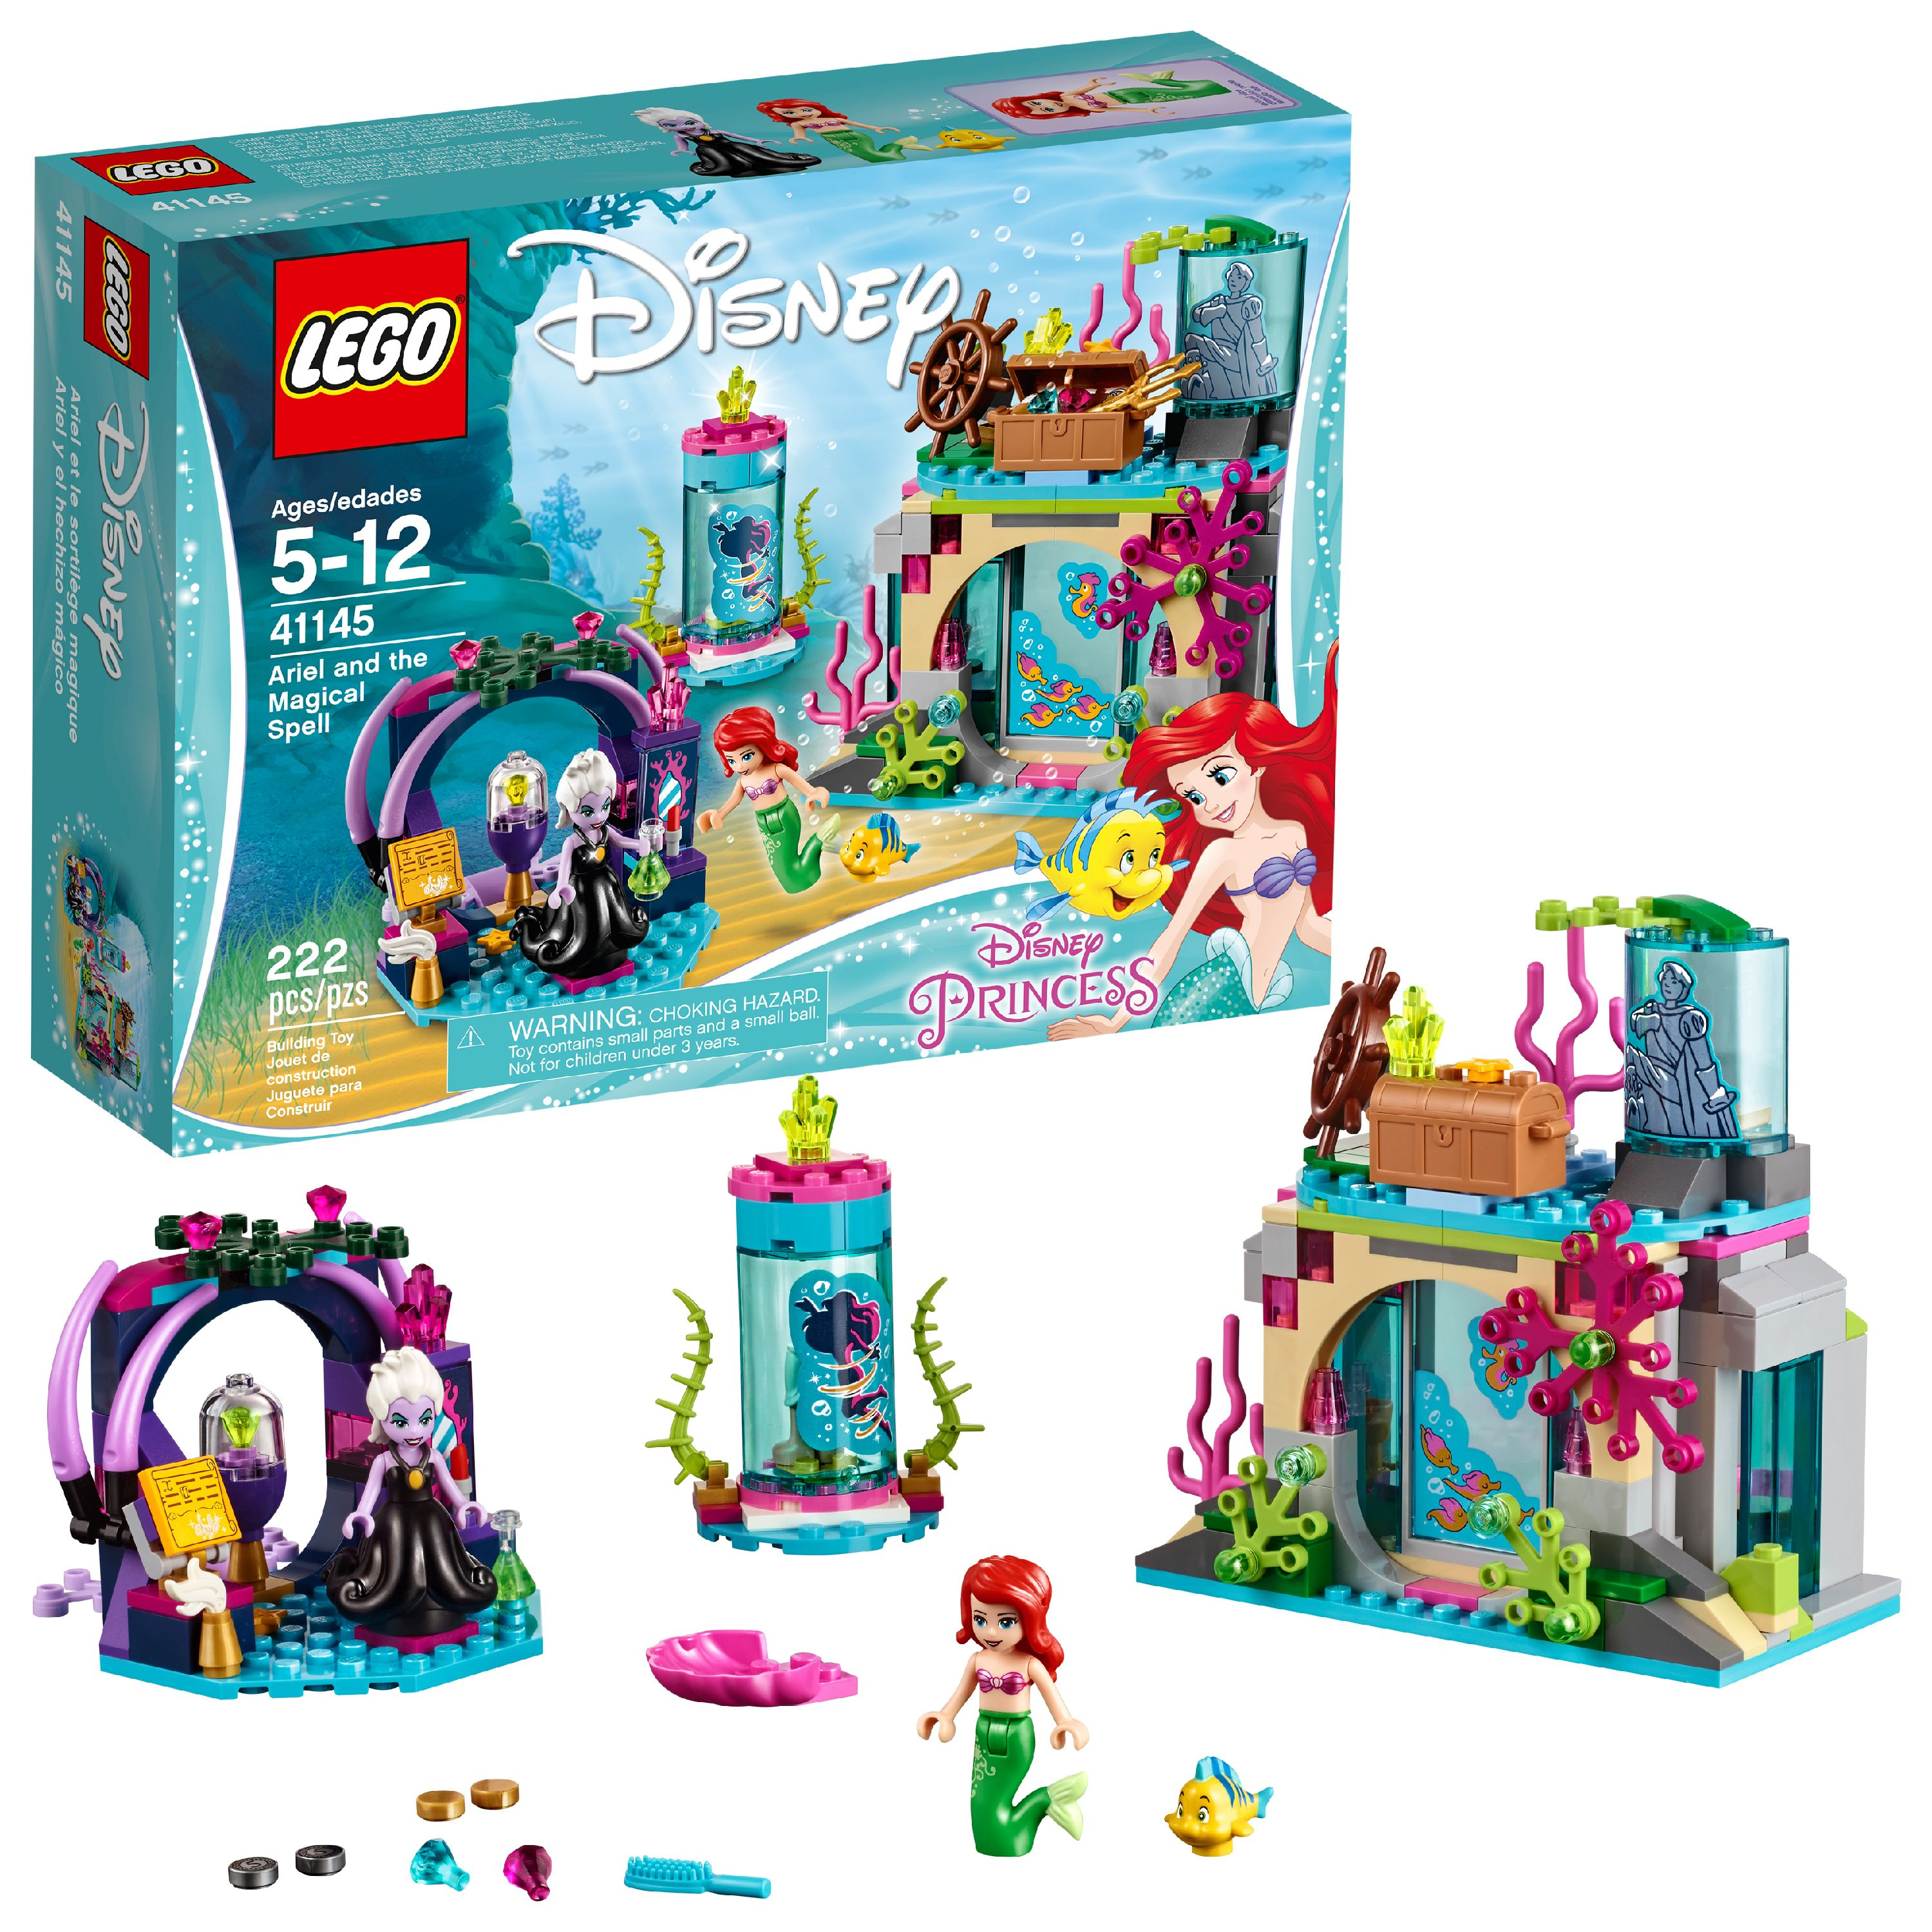 Disney Ariel 41145 Lego Spell Princess The And Magical yf7Ibv6Ygm